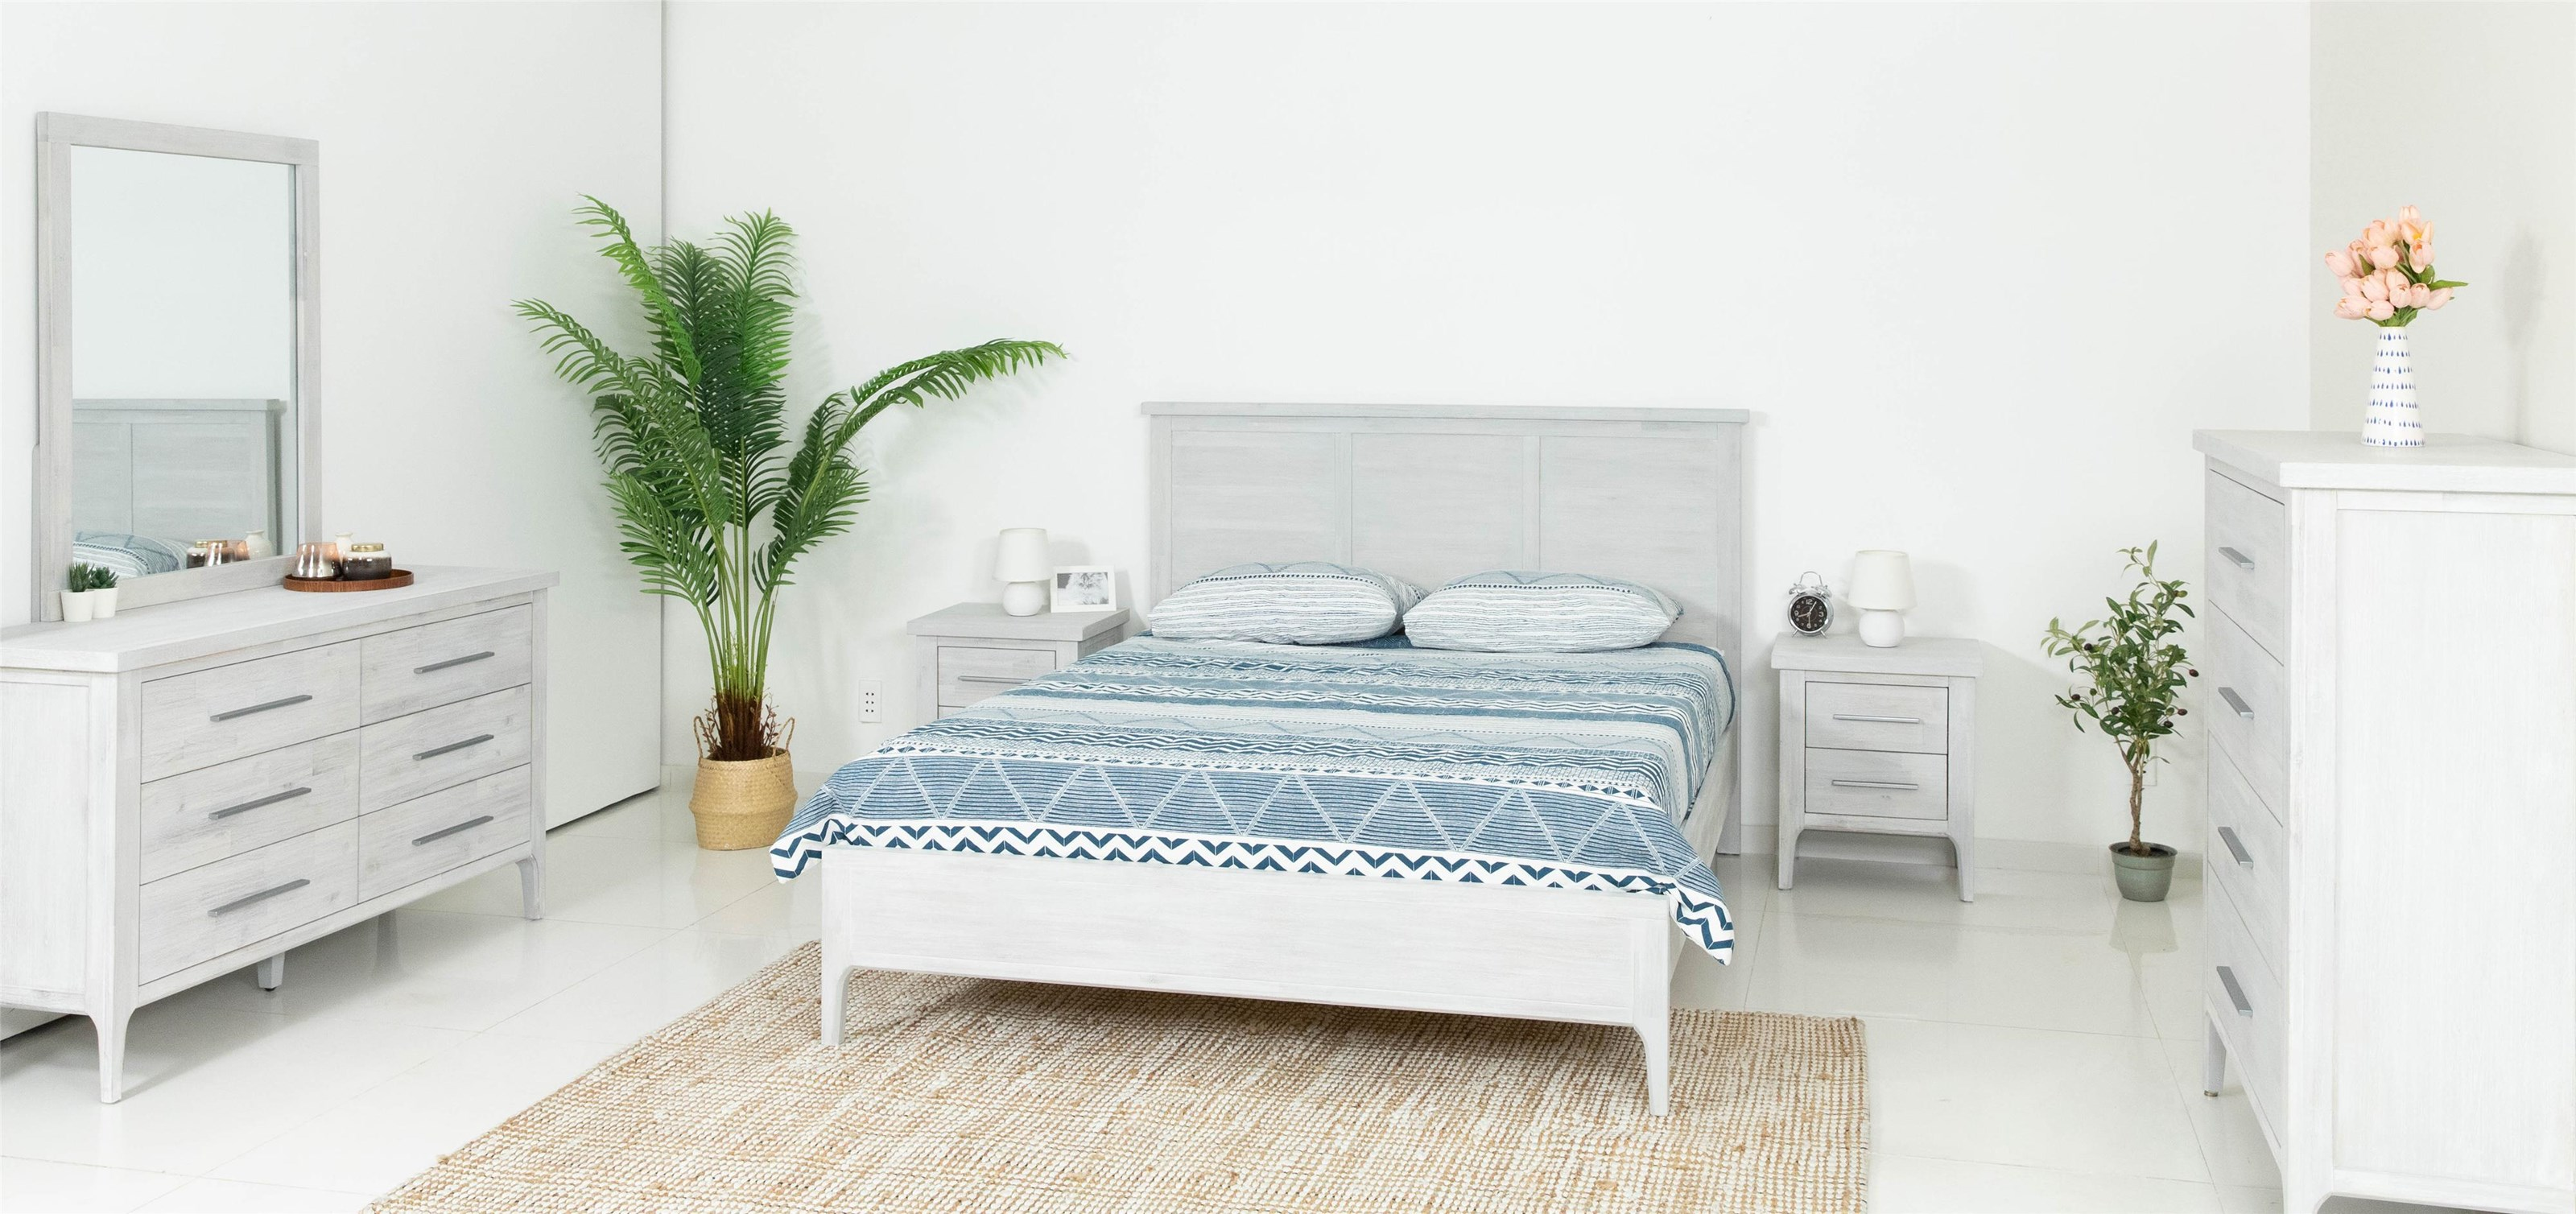 Morgan 4 Piece Queen Bedroom Set by Design Evolution at Red Knot